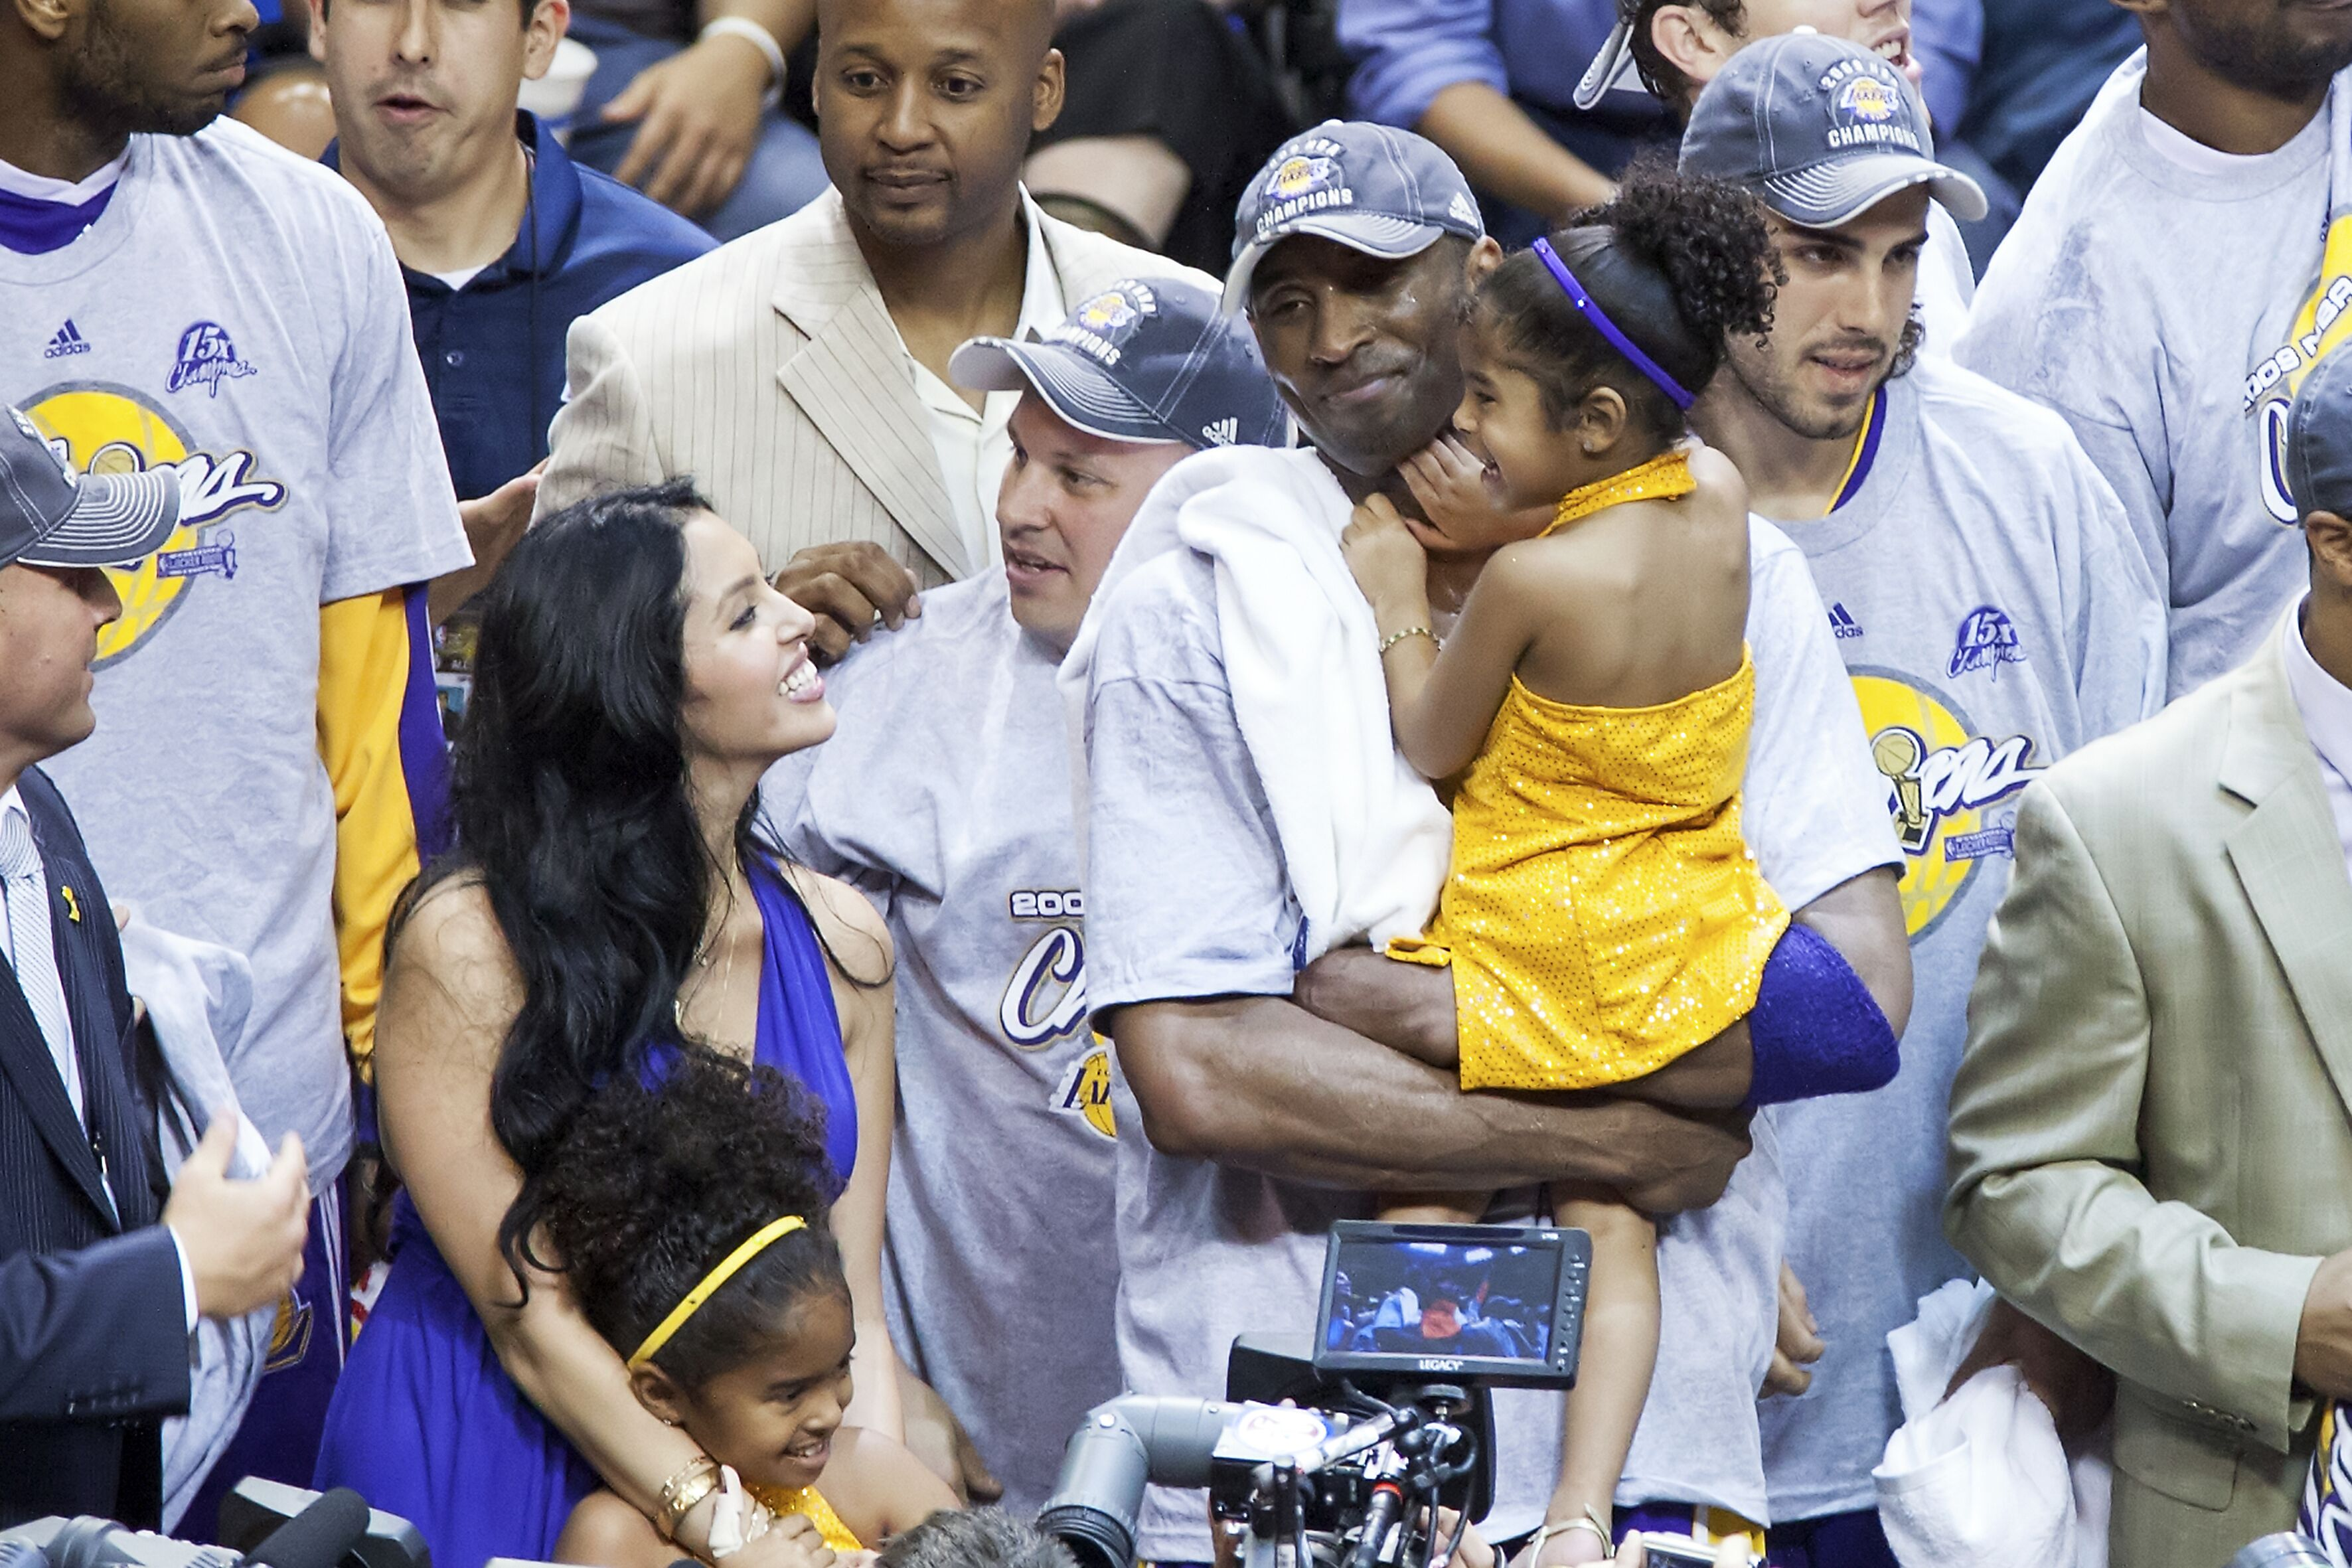 Kobe Bryant holds his daughter Gianna while standing next to her mother Vanessa after Game Five of the NBA Finals on June 14, 2009, in Orlando, Florida | Photo: Chris Elise/NBAE/Getty Images